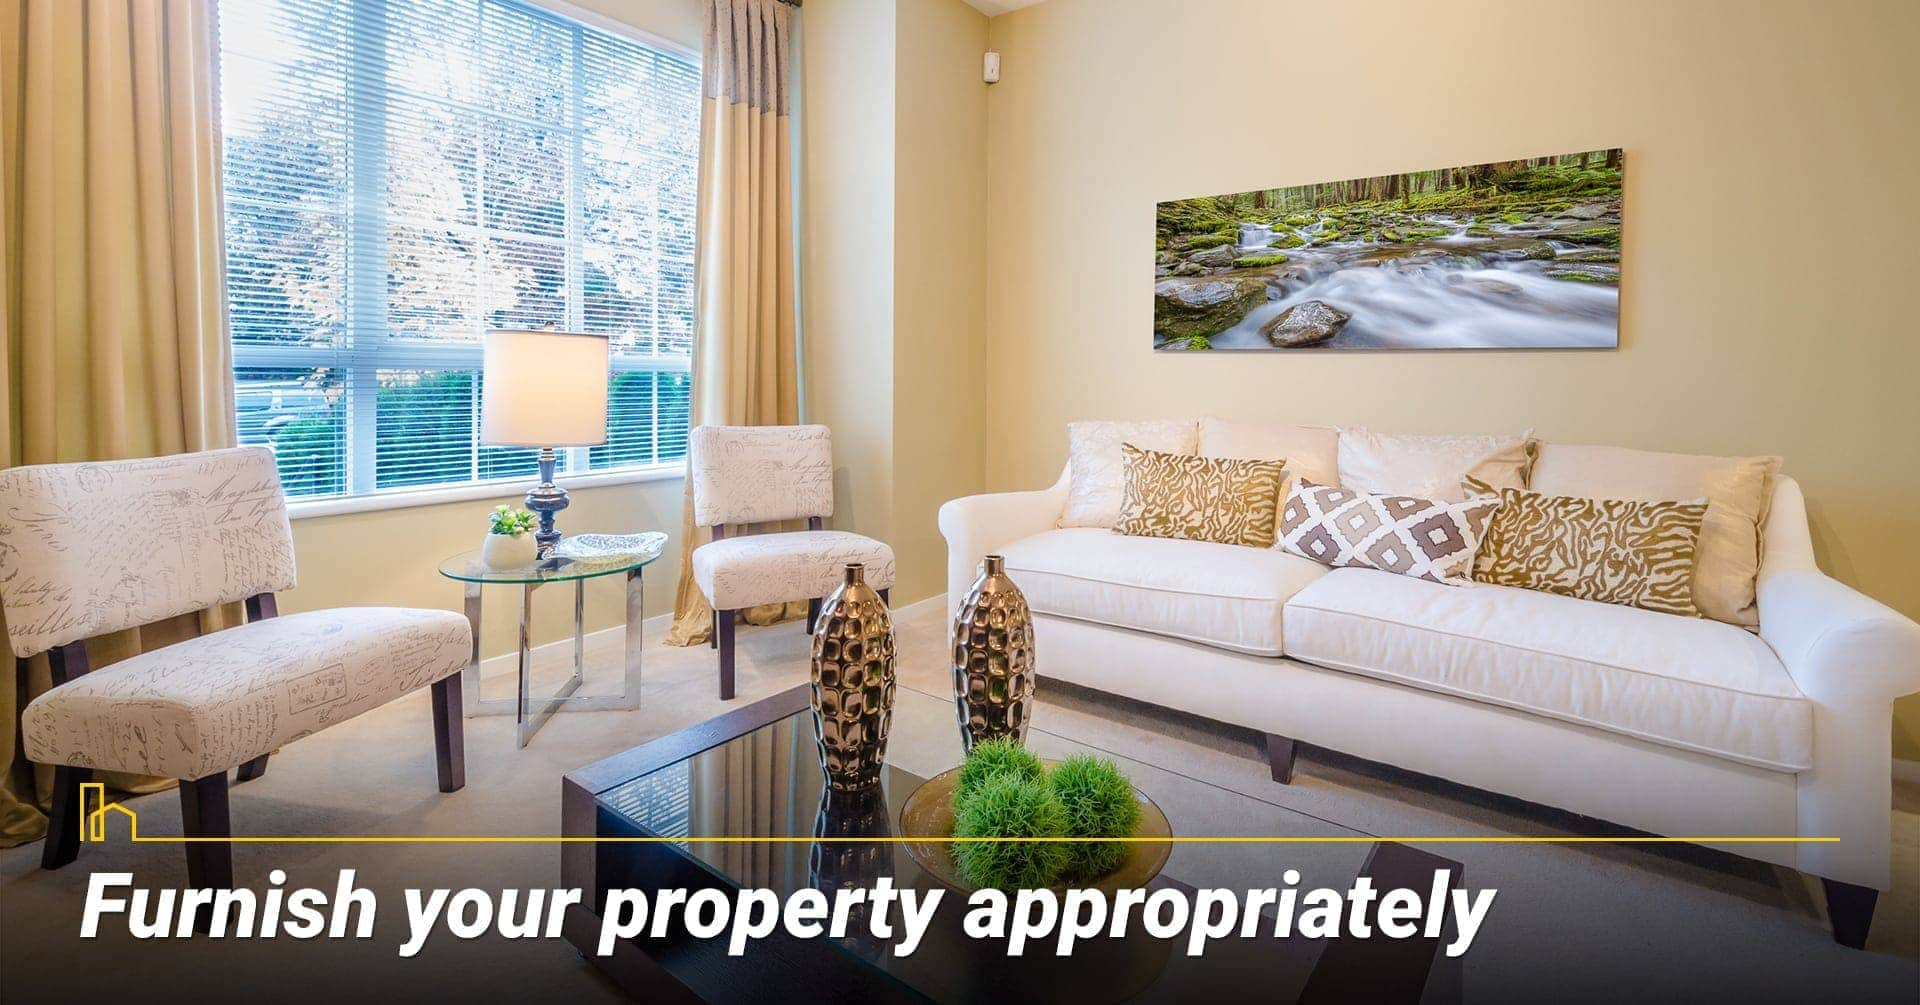 Furnish your property appropriately, decorate your property